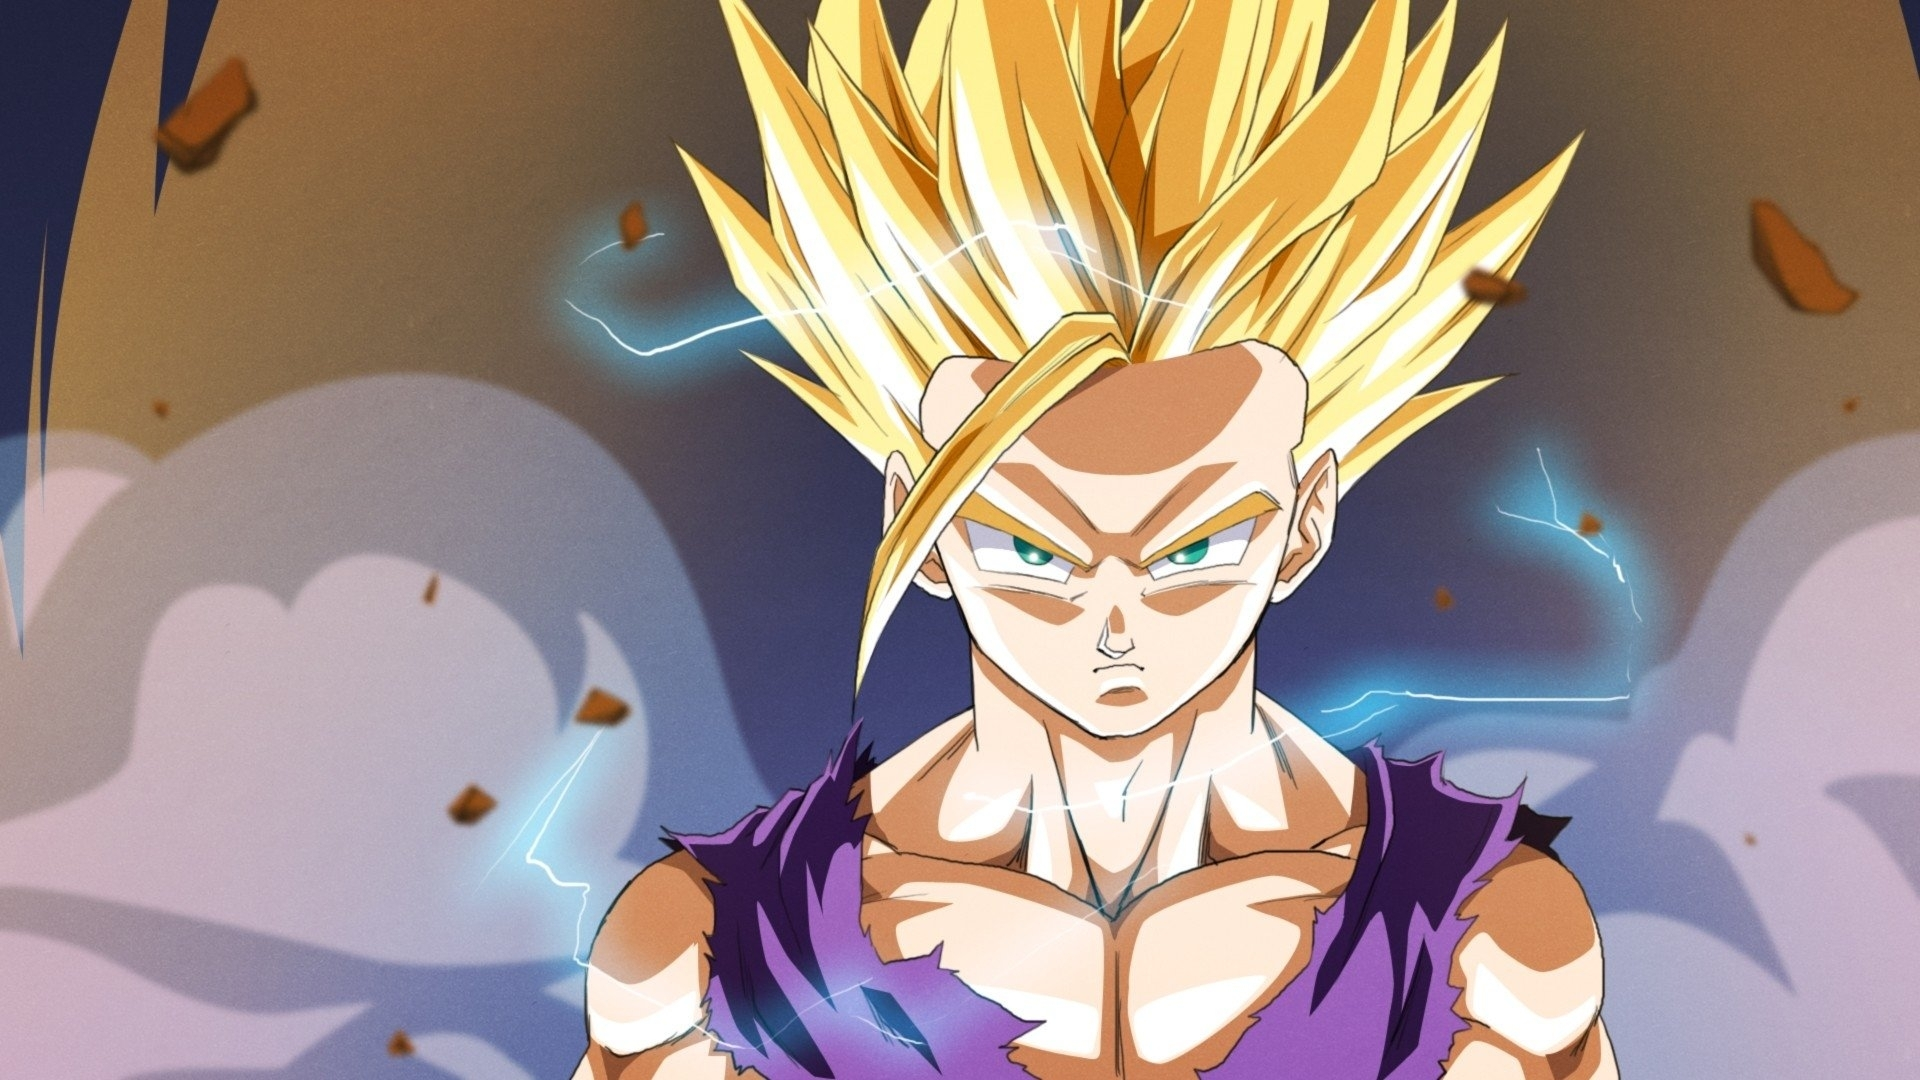 639 dragon ball z hd wallpapers | background images - wallpaper abyss